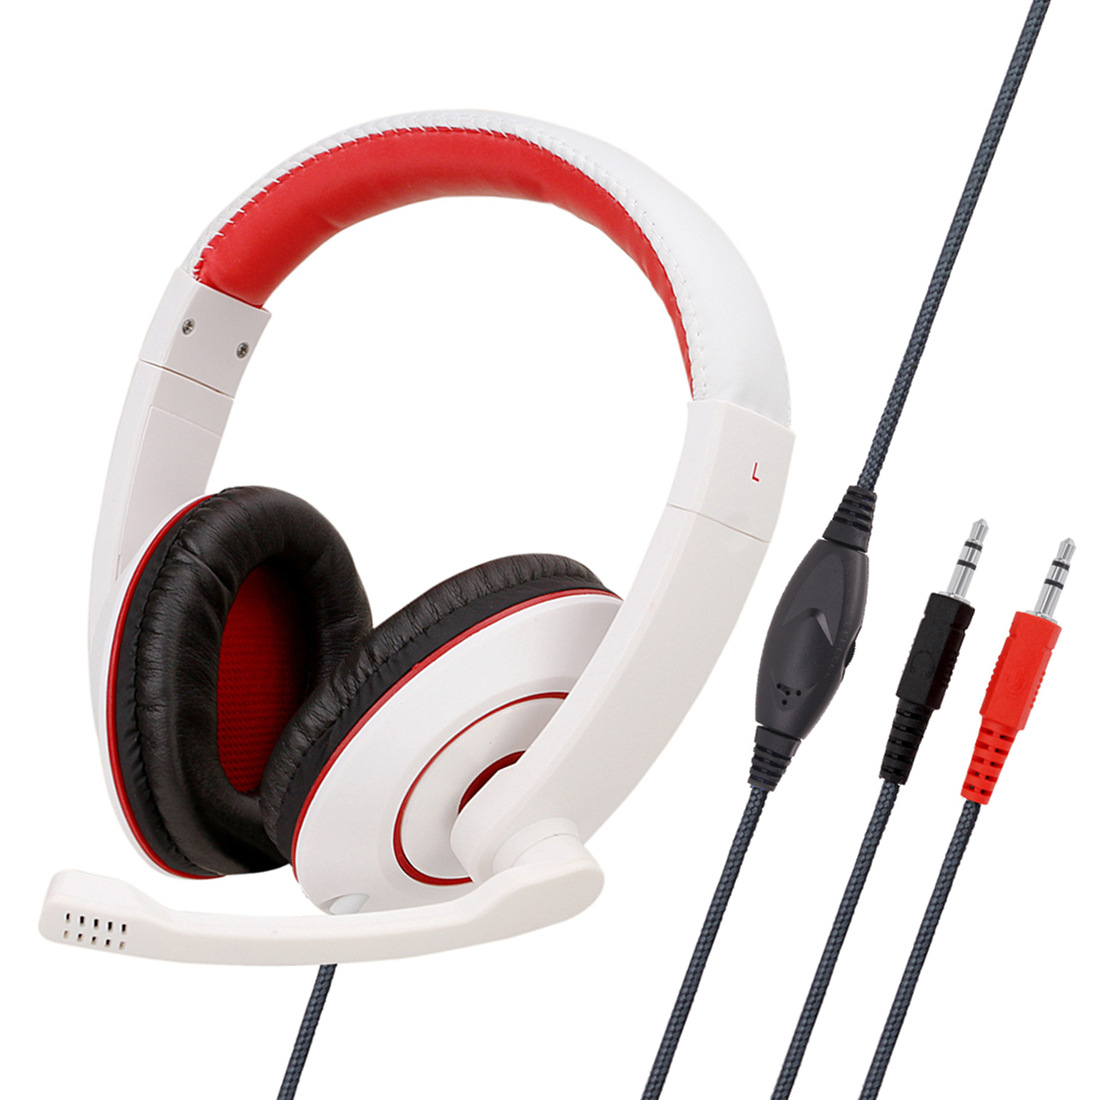 Anti-violence Computer Headset Portable Stereo Volume Control Headphone for PC Laptop with Mic SY722MV white PC does not shine headphones with packaging